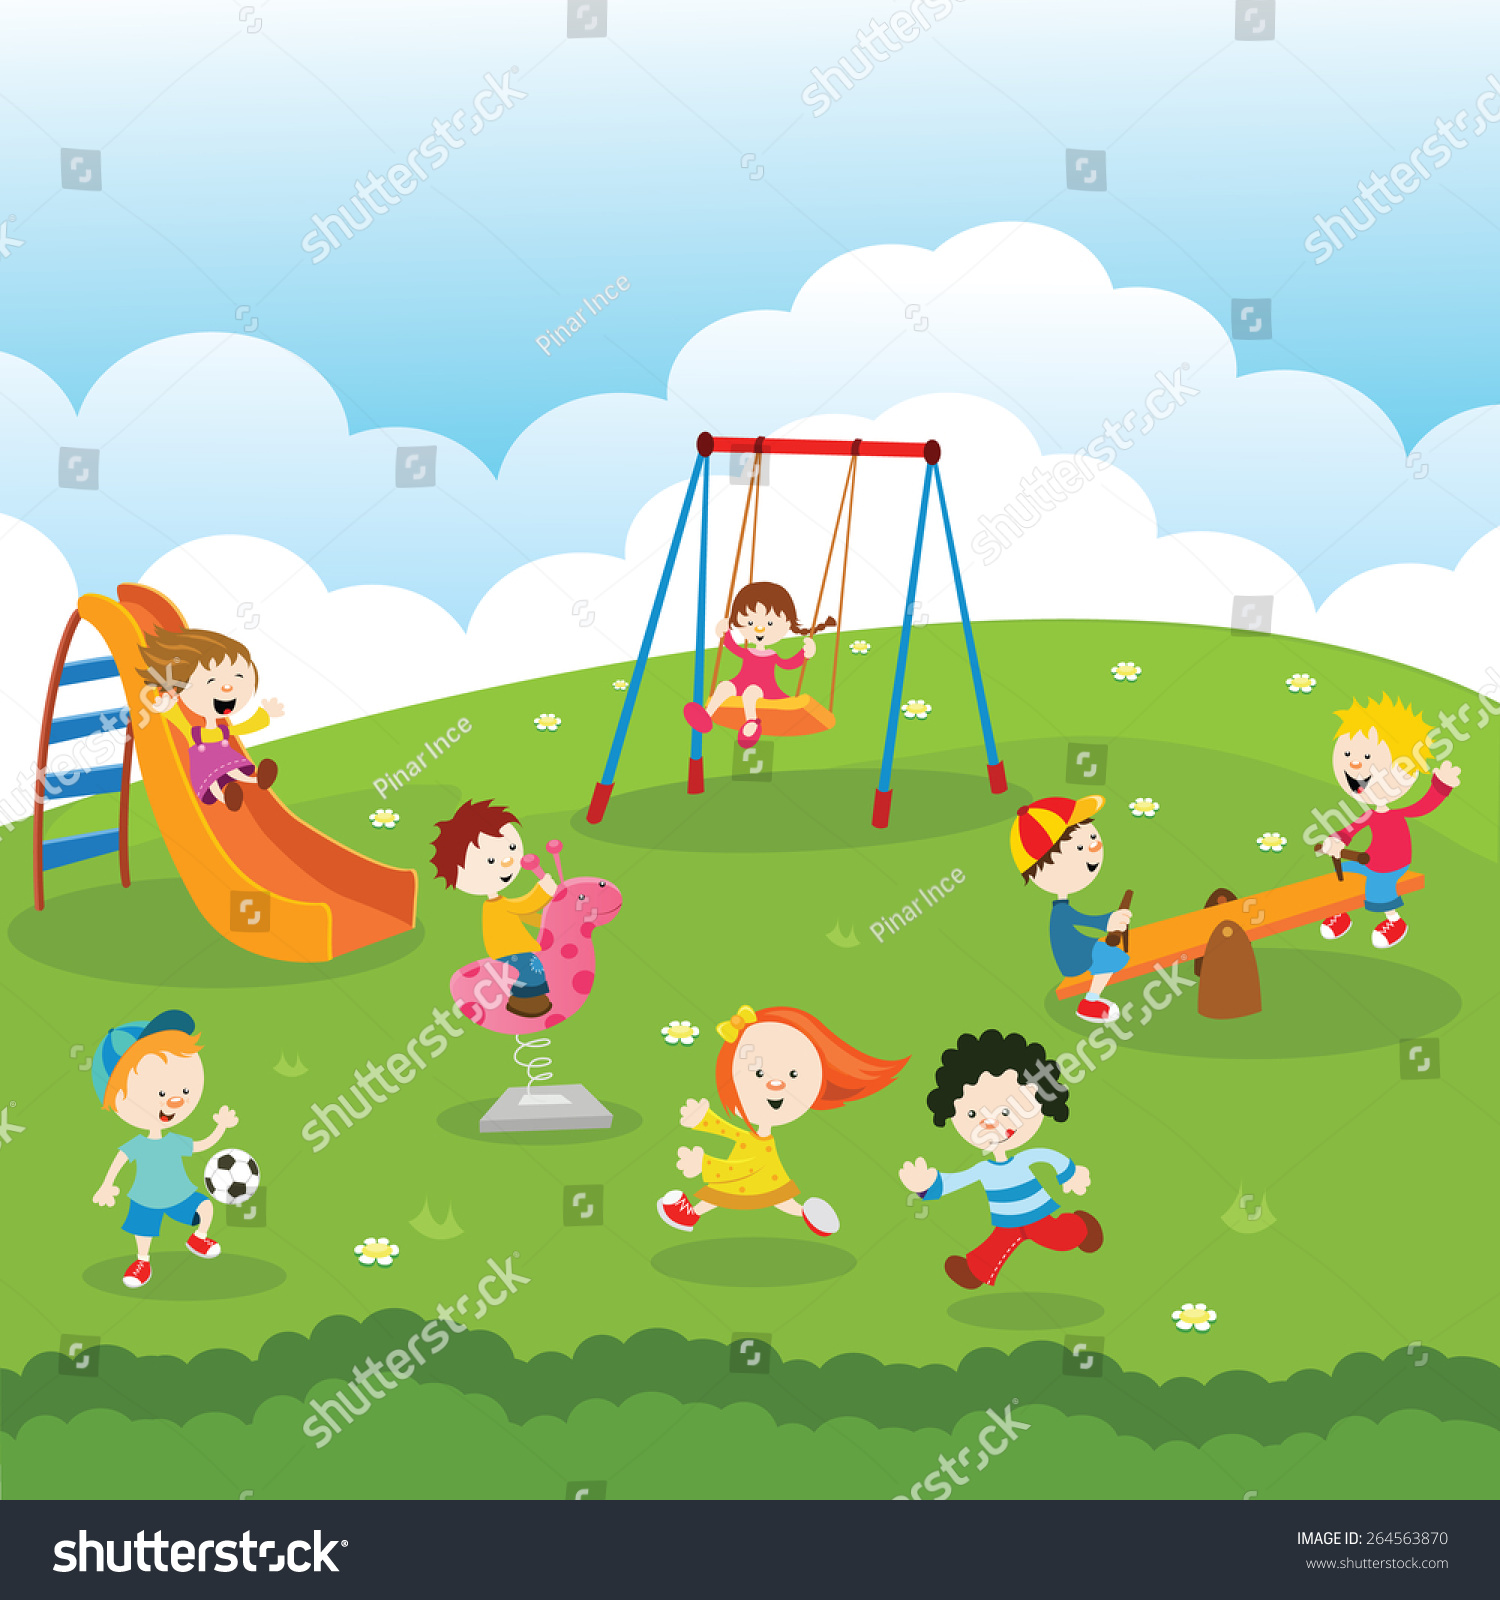 kids park stock vector 264563870 shutterstock sports equipment clipart free Sports Clip Art